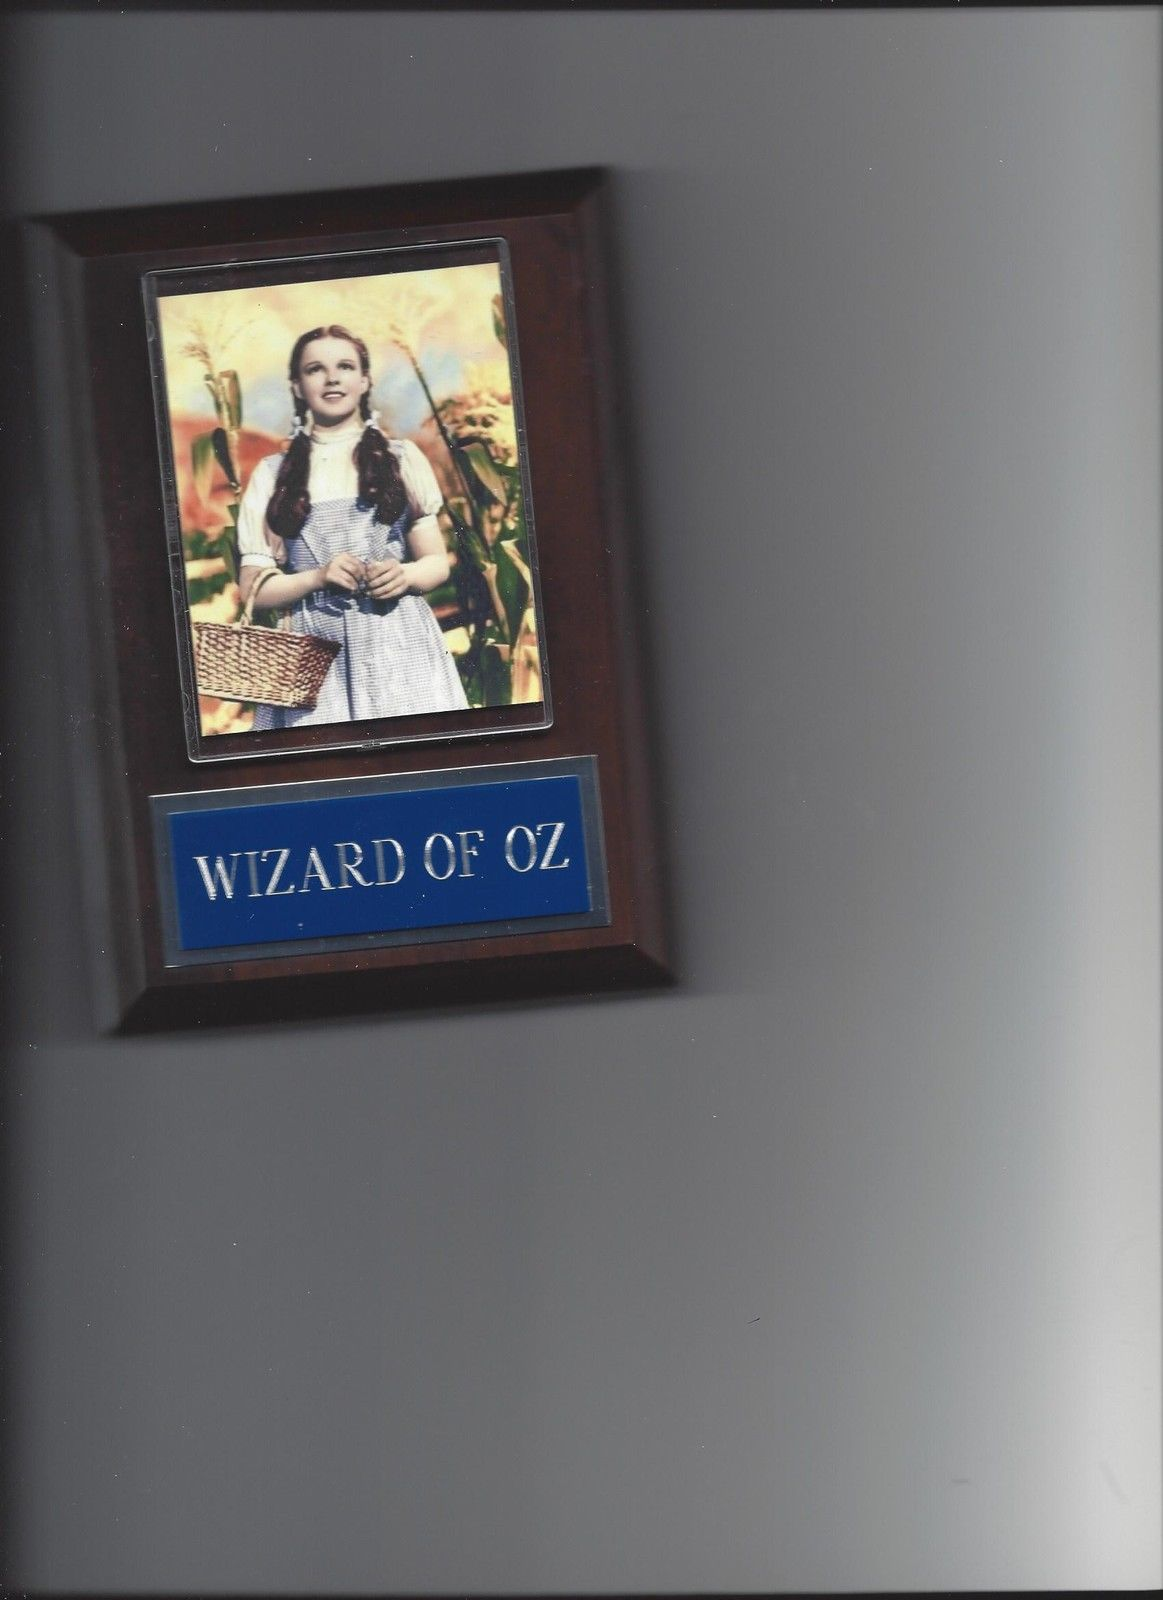 Primary image for WIZARD OF OZ PLAQUE MOVIE DOROTHY JUDY GARLAND